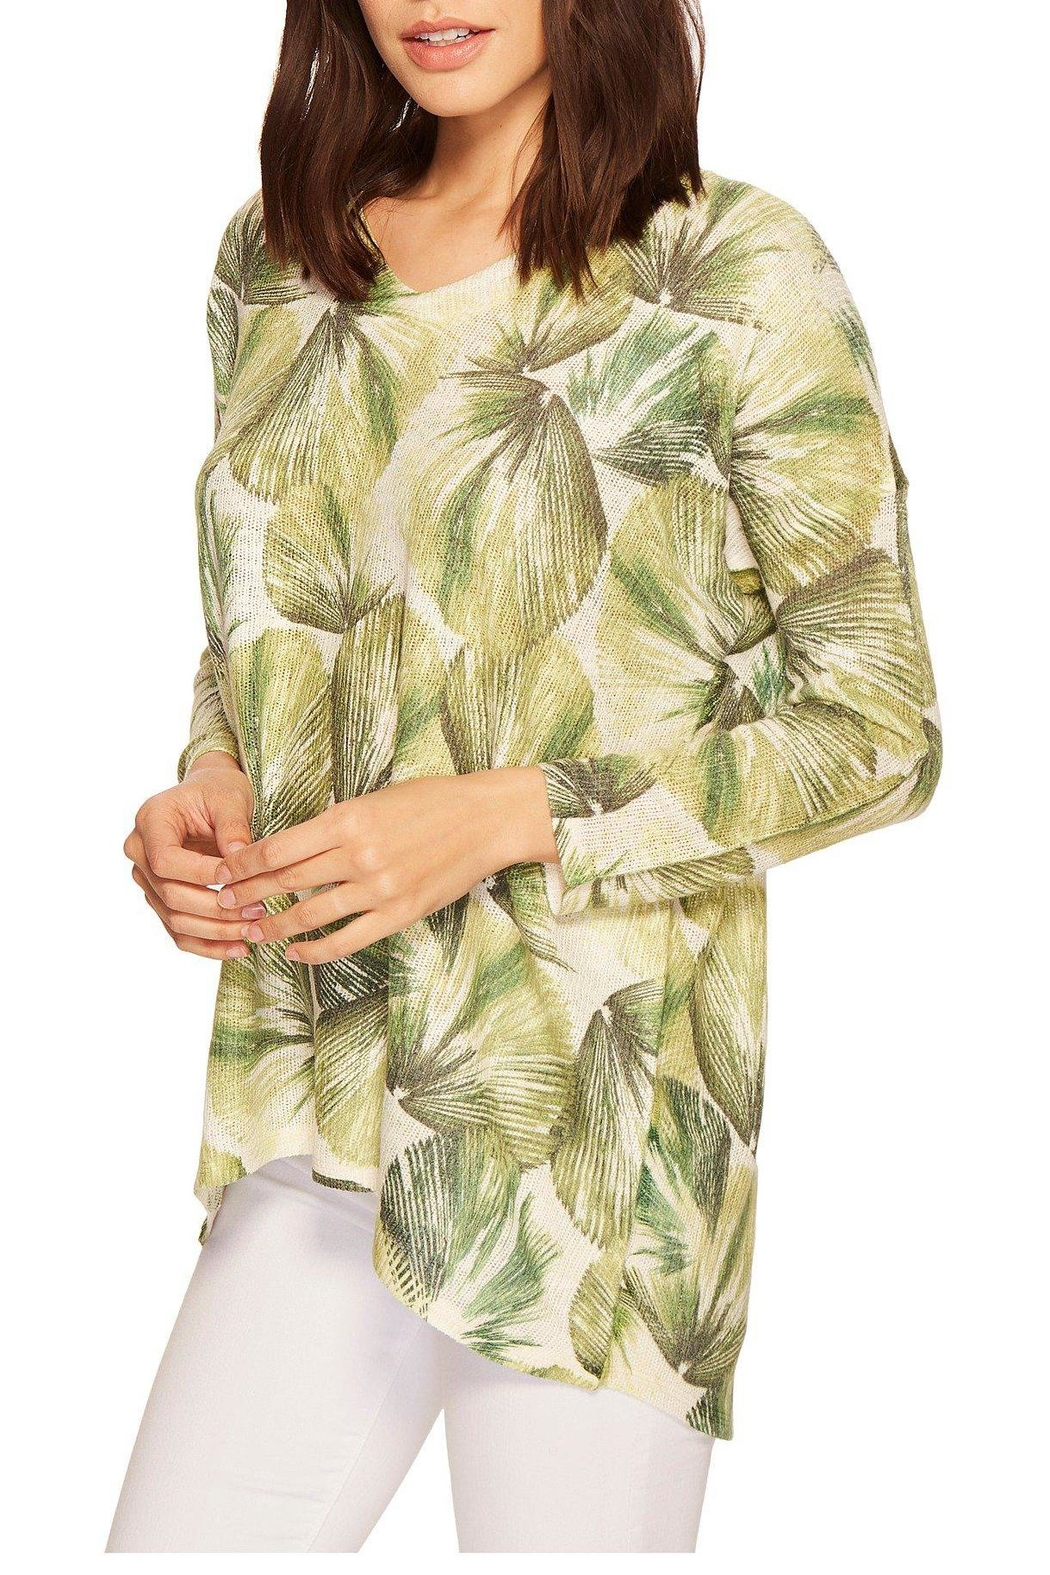 Nally & Millie Tropical Leaf Top - Back Cropped Image